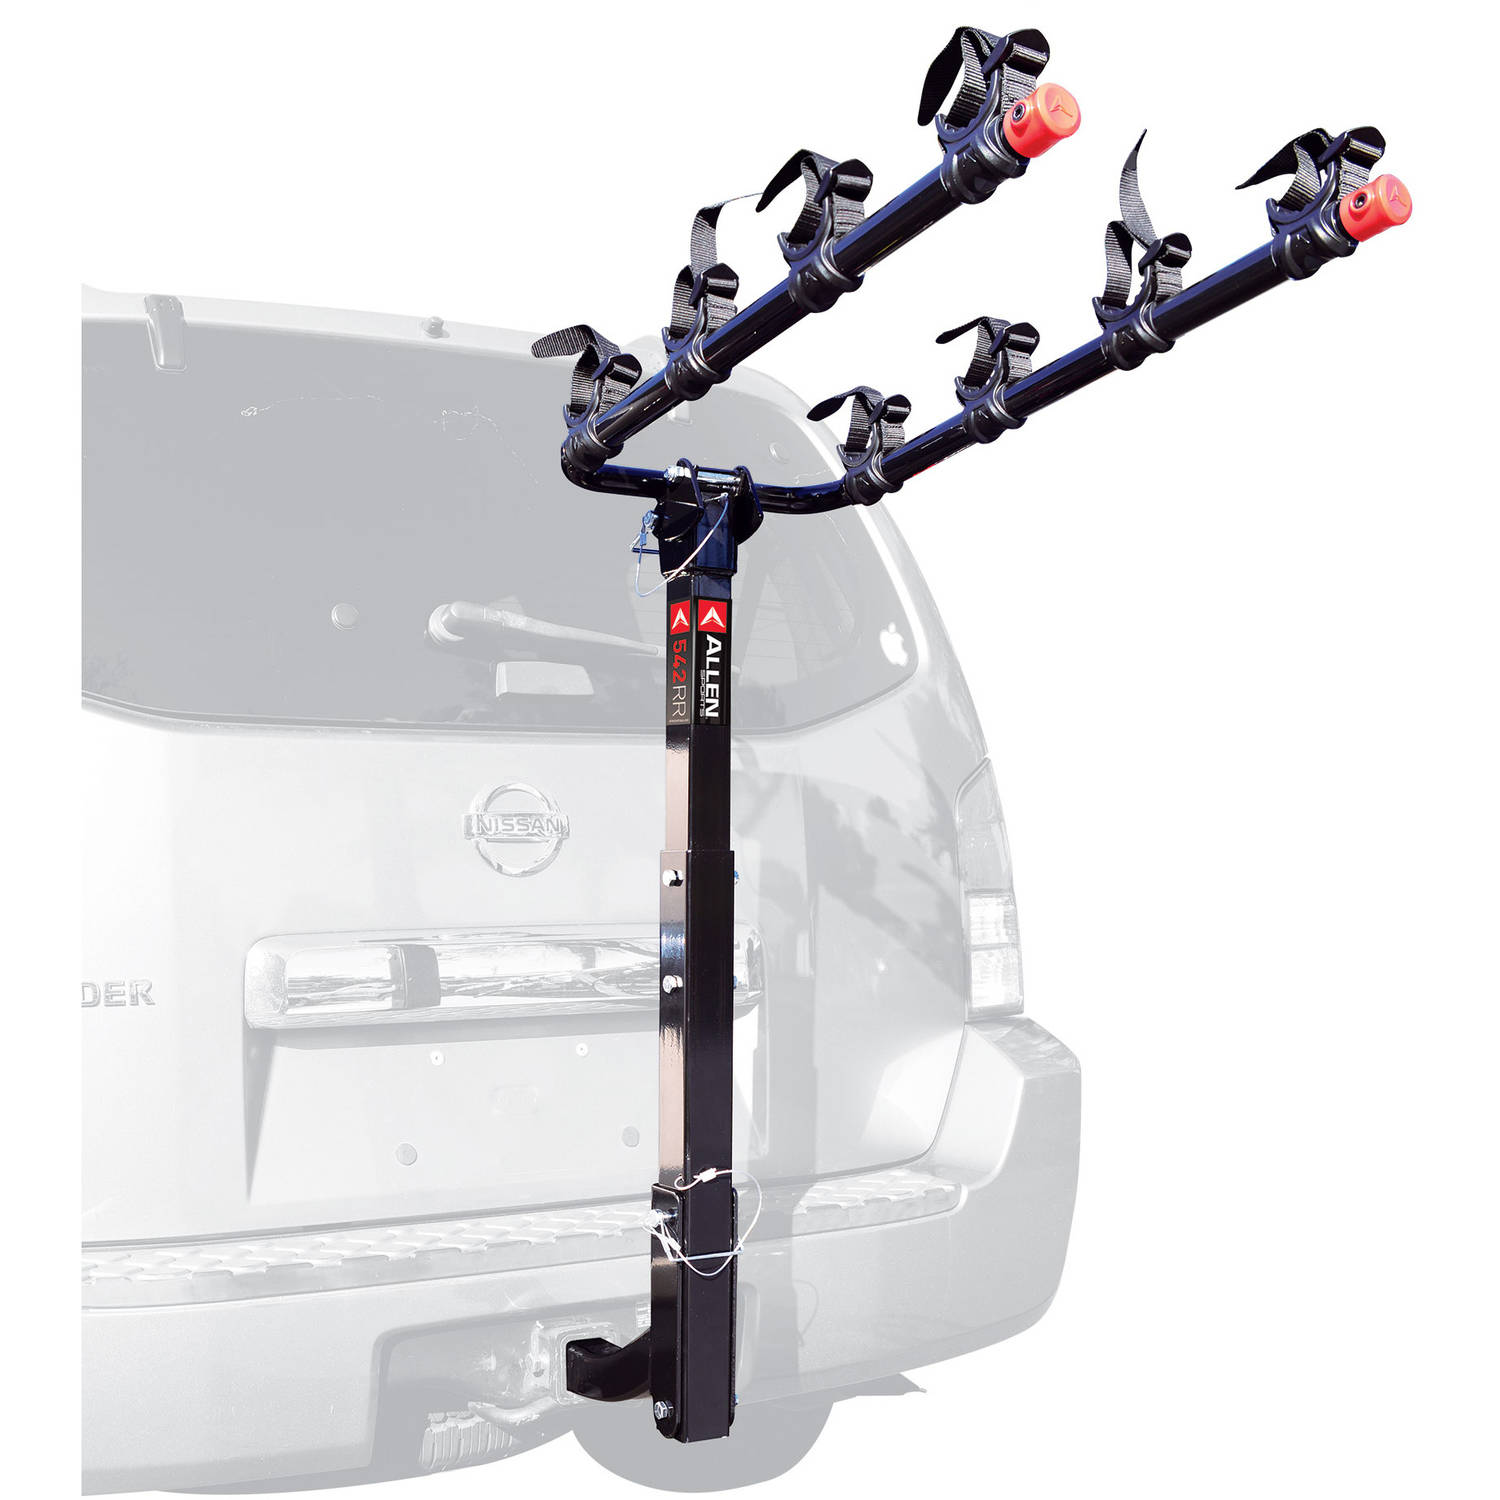 Allen Sports 542RR Deluxe 4-Bike Hitch Mounted Bike Rack by THE R A ALLEN COMPANY INC